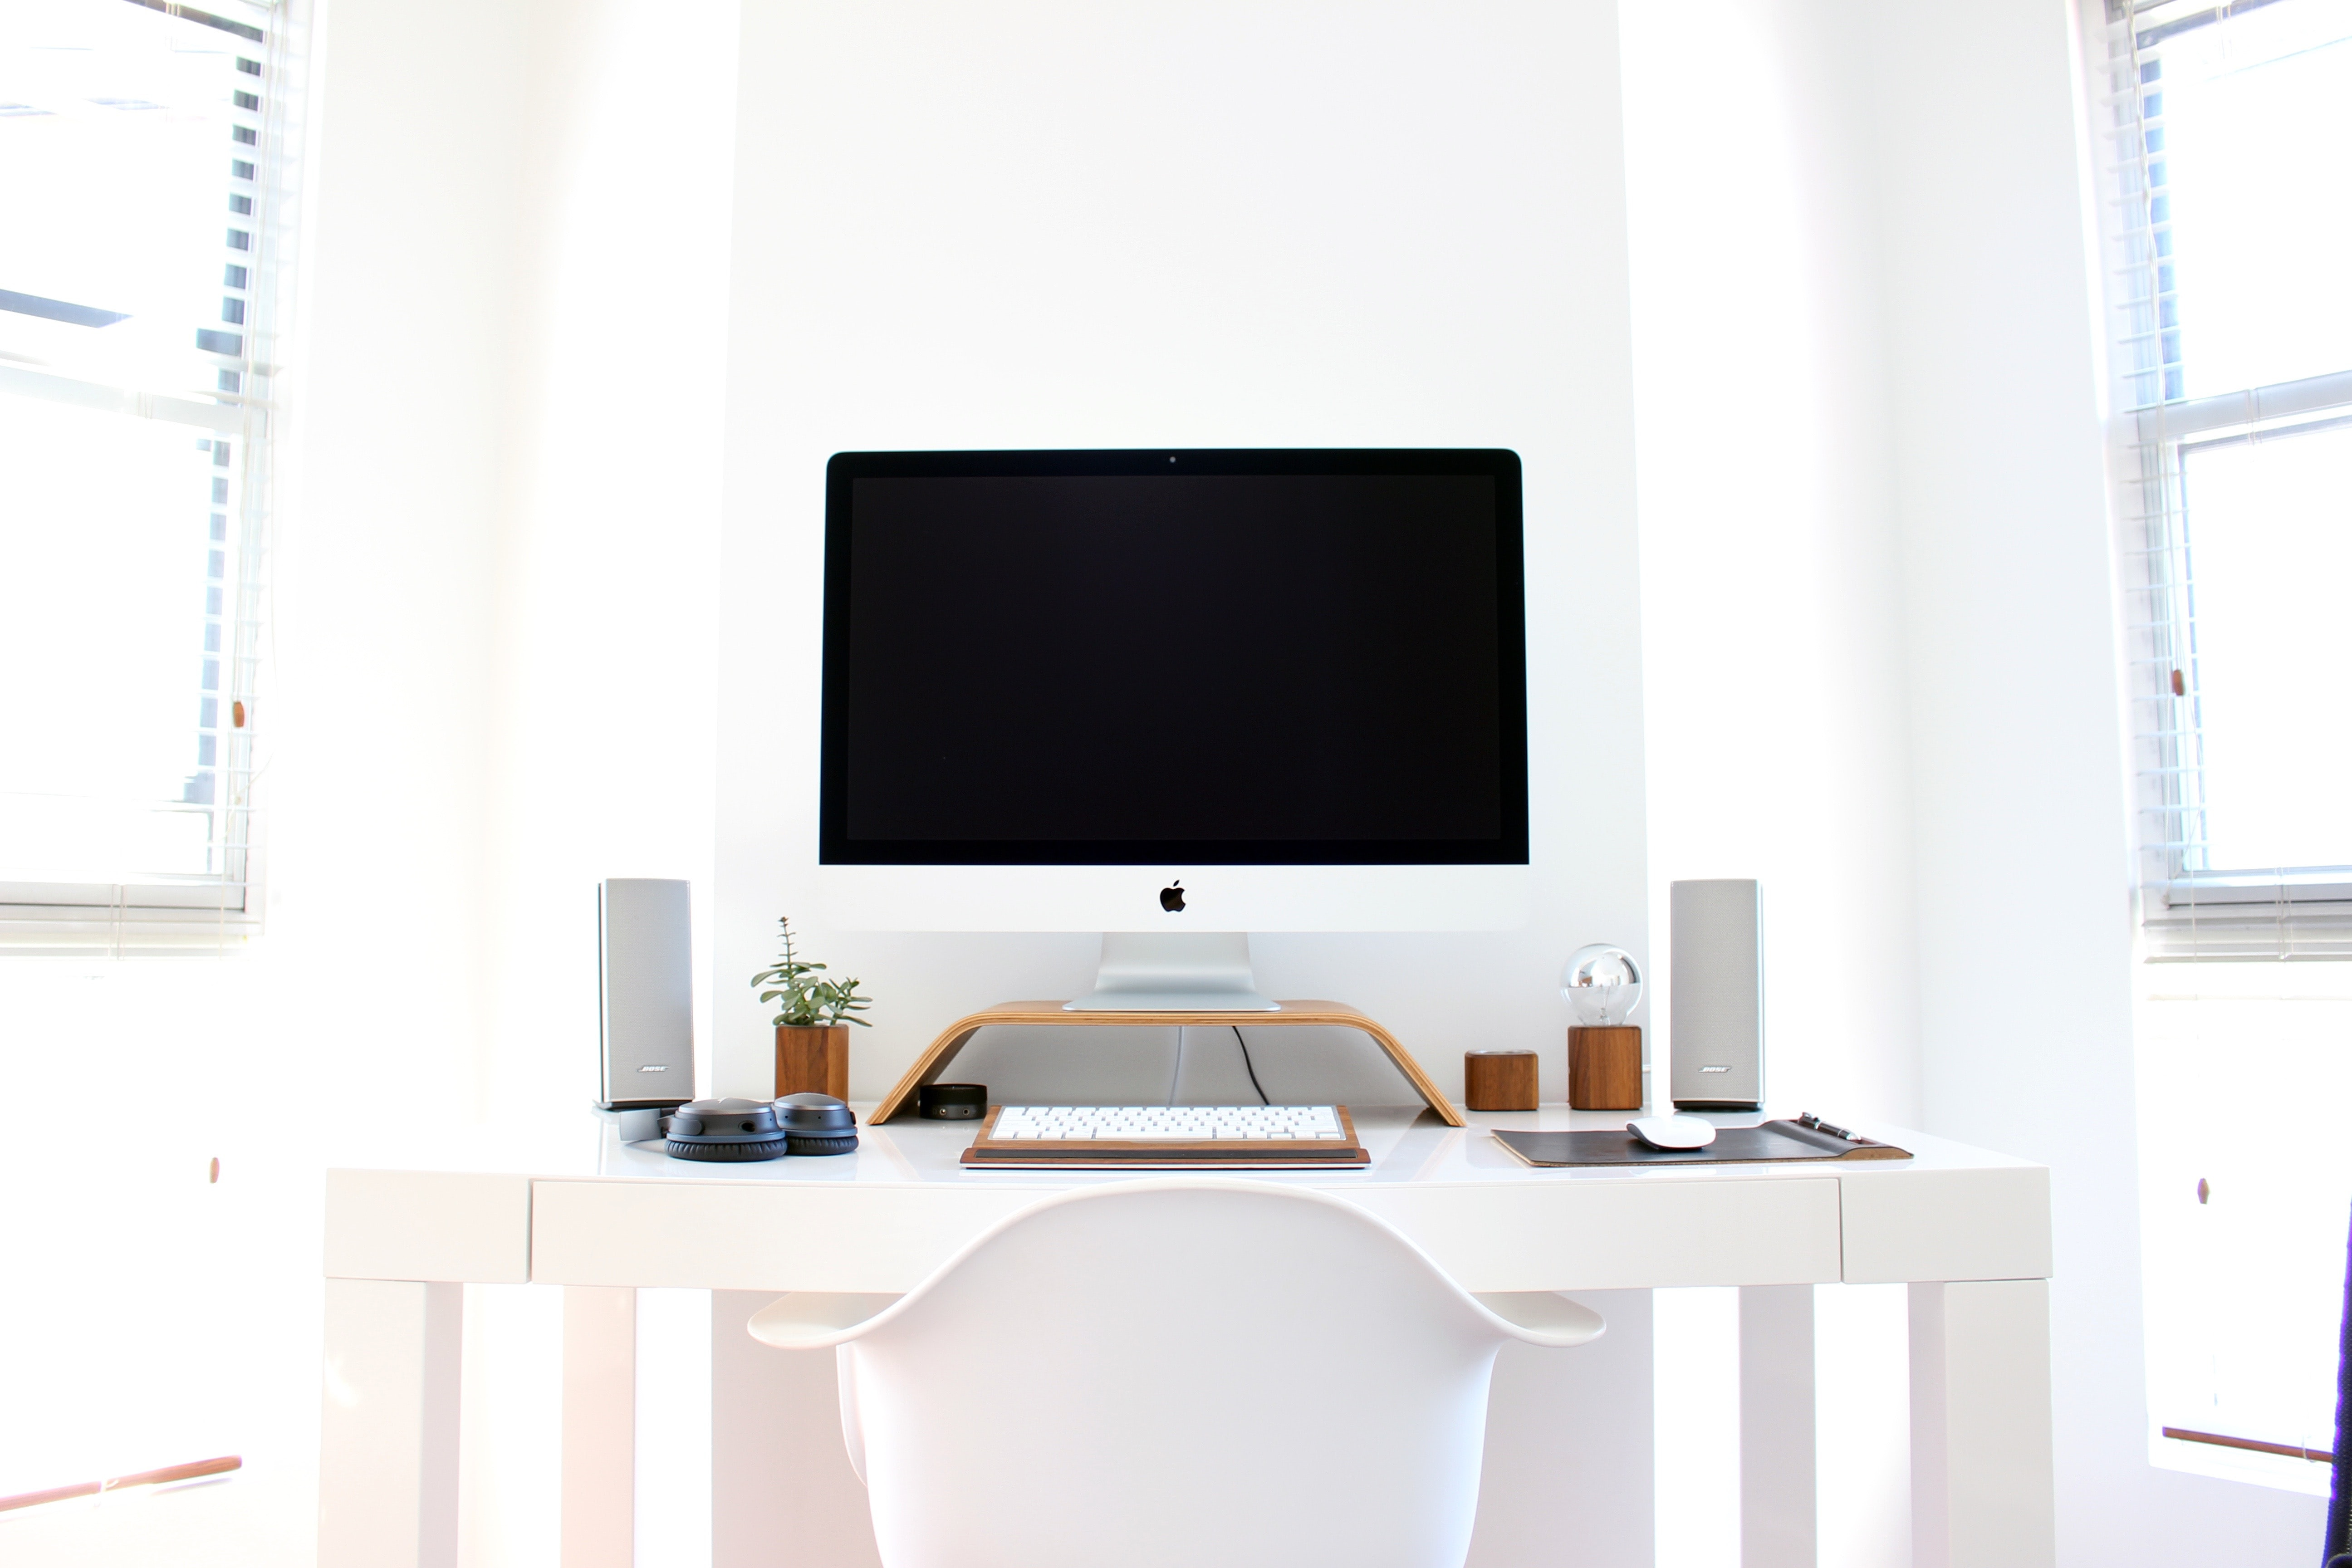 An orderly computer workspace with an iMac